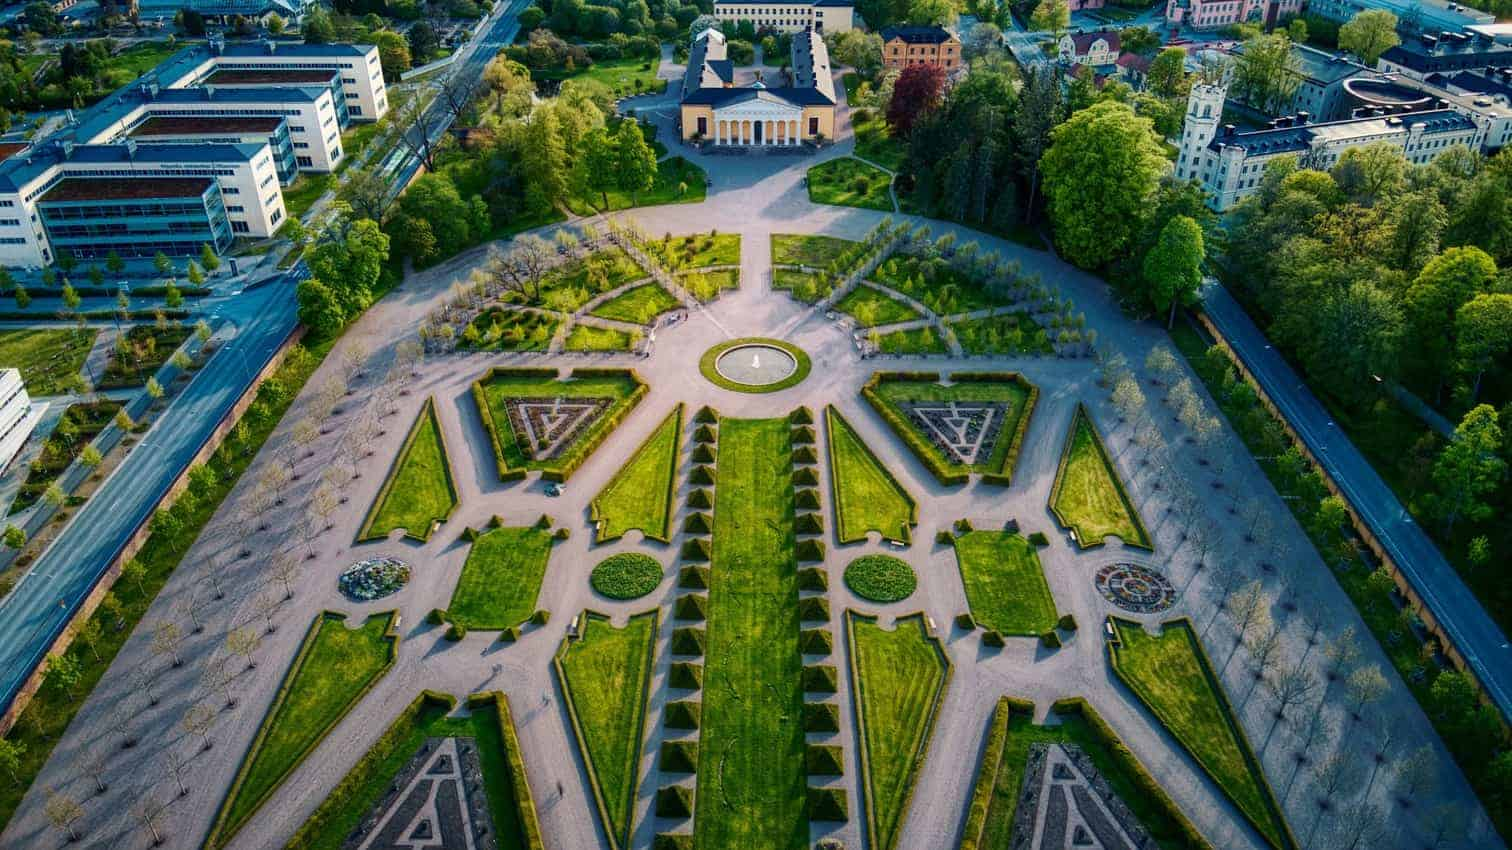 Aerial Linneanum The geometric features of this garden make it so appealing to see, from literally any angle